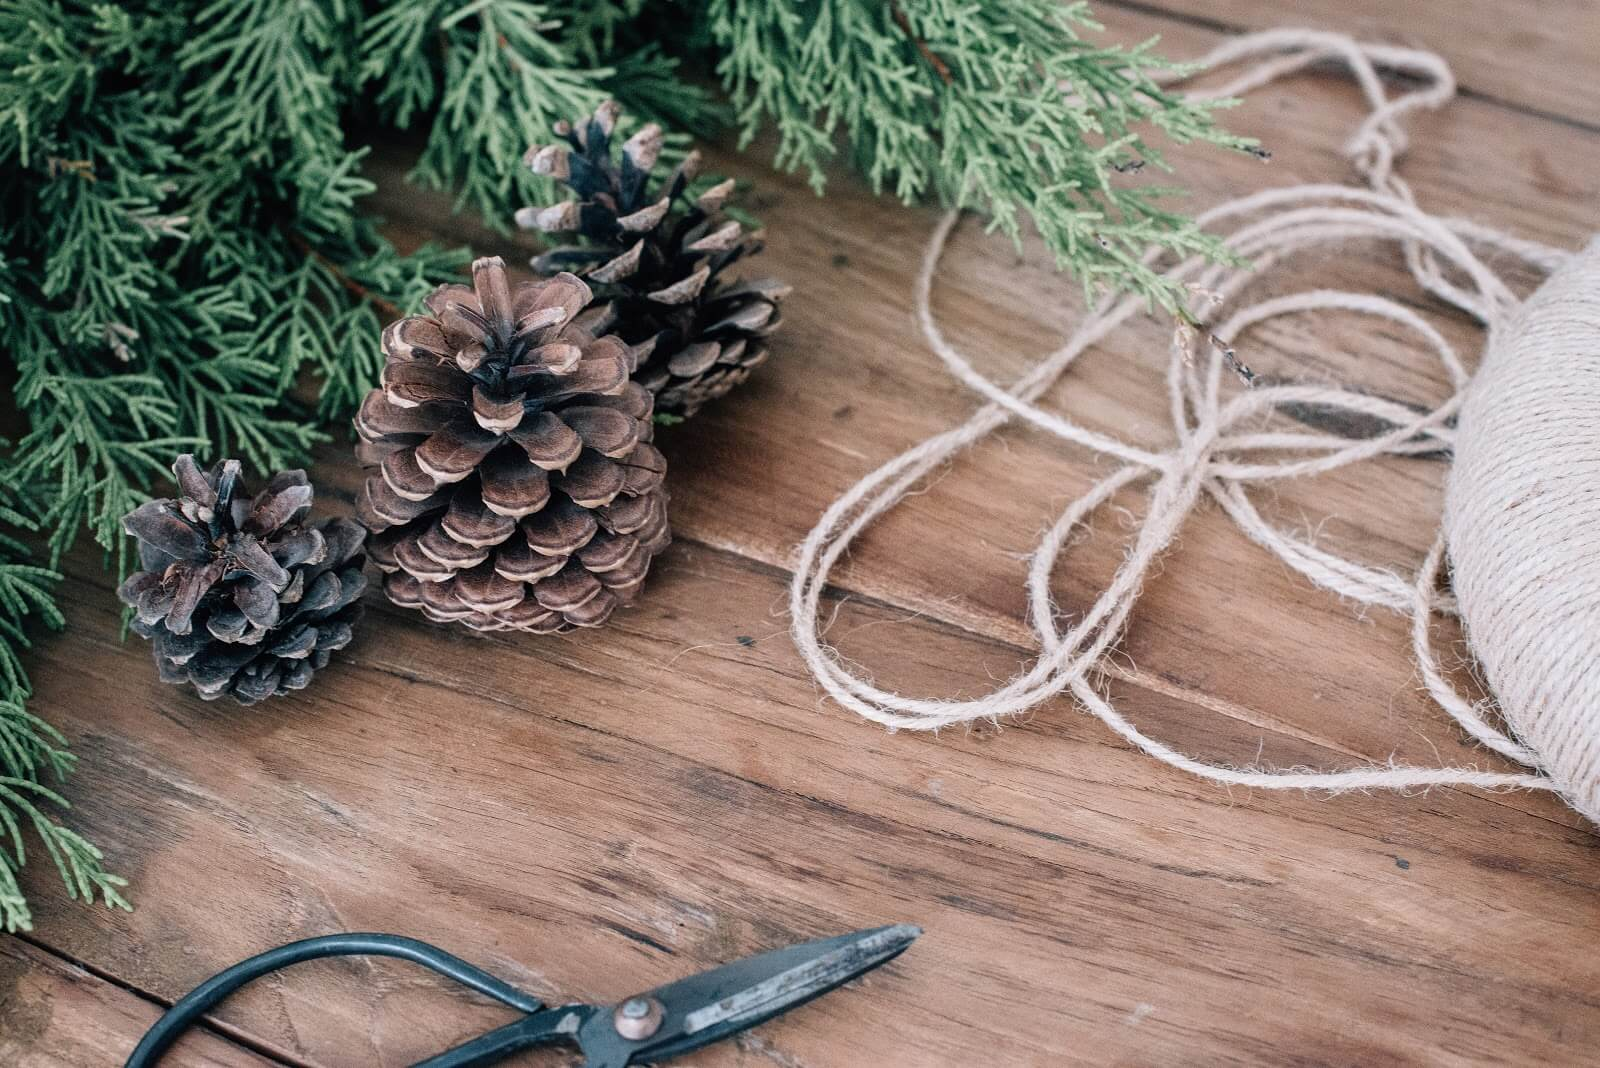 Natural or recycled wreaths, driftwood ornaments, decorated pine cones, and snowflakes made out of sticks.